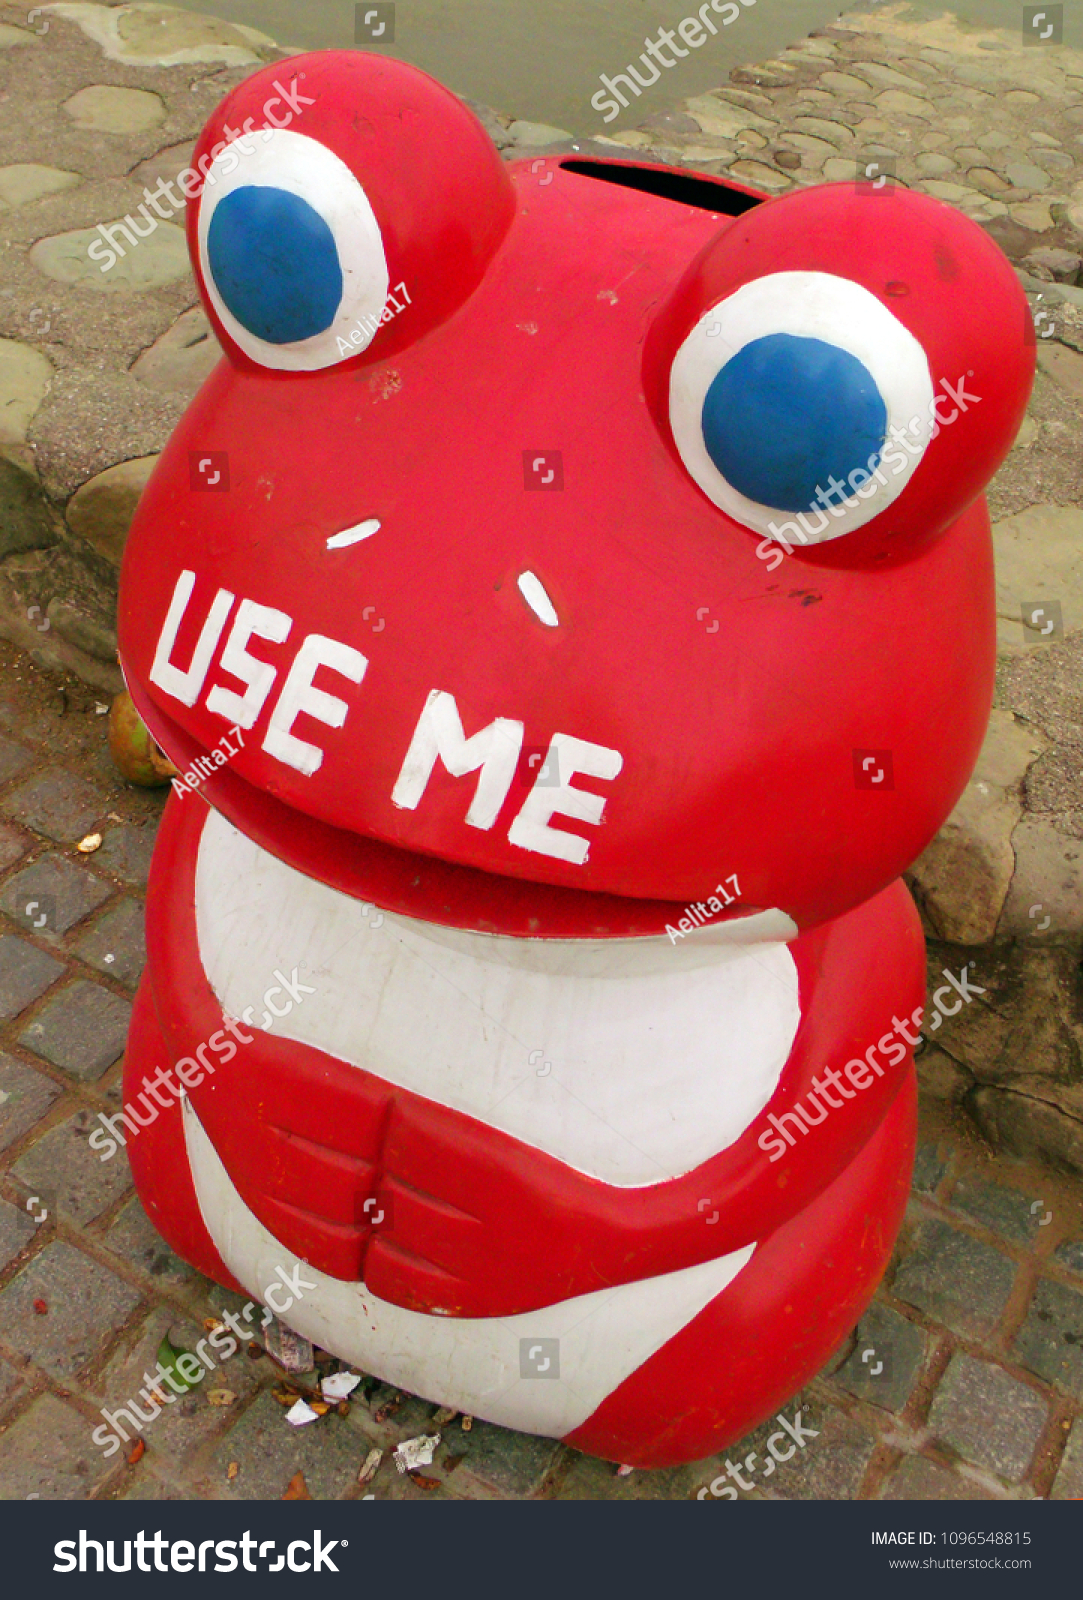 Fun Trash Can Cute Red Trash Bin On Street Stock Photo Edit Now 1096548815